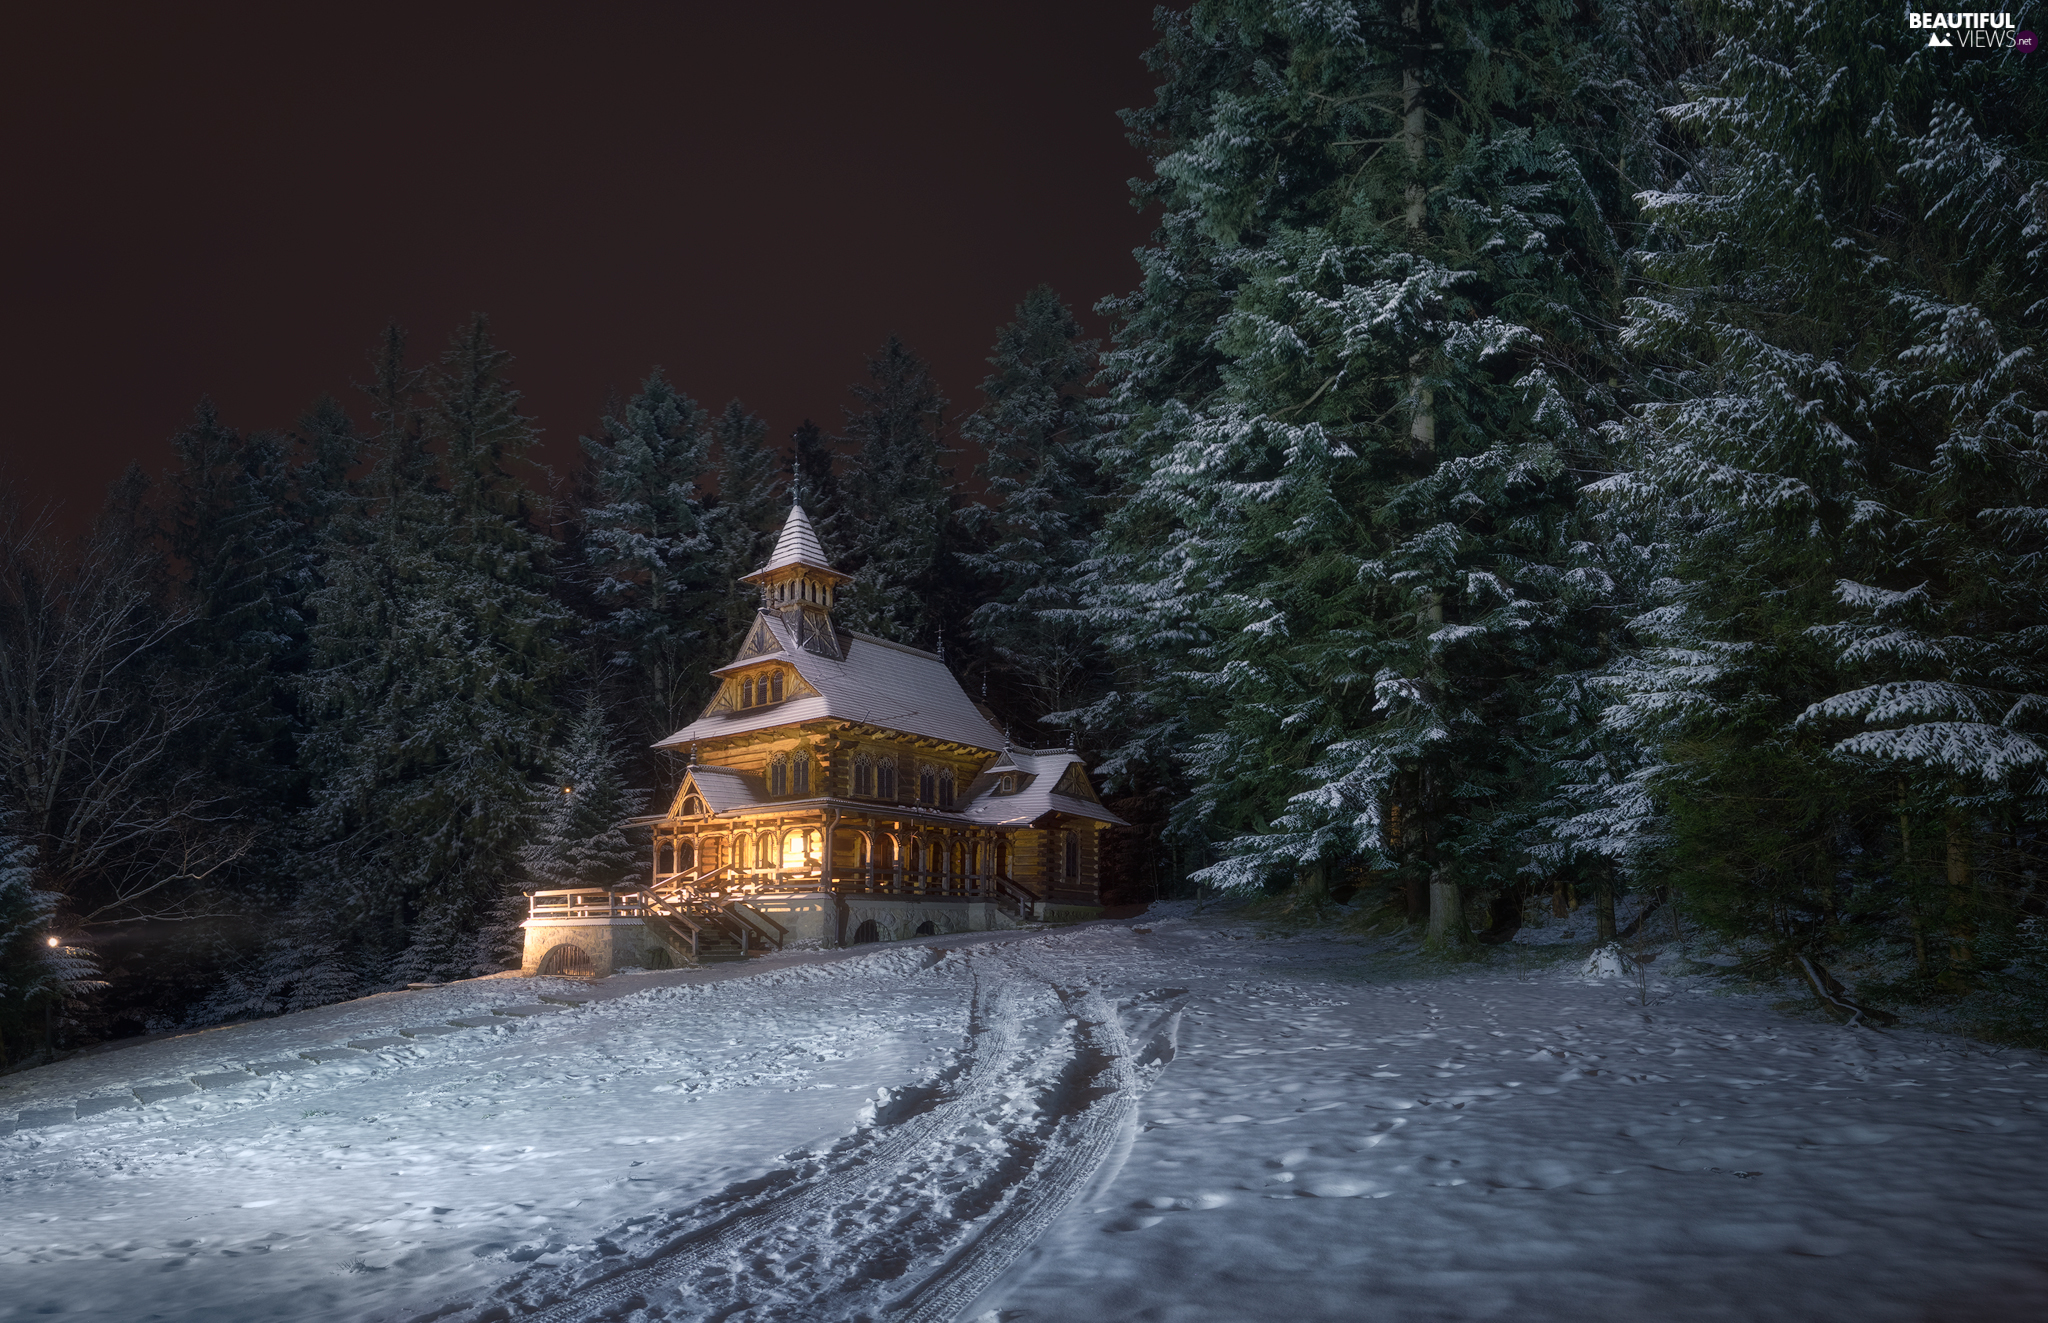 Zakopane, Jaszczurowka, Poland, winter, Way, light, church, forest, Chapel of the Sacred Heart of Jesus